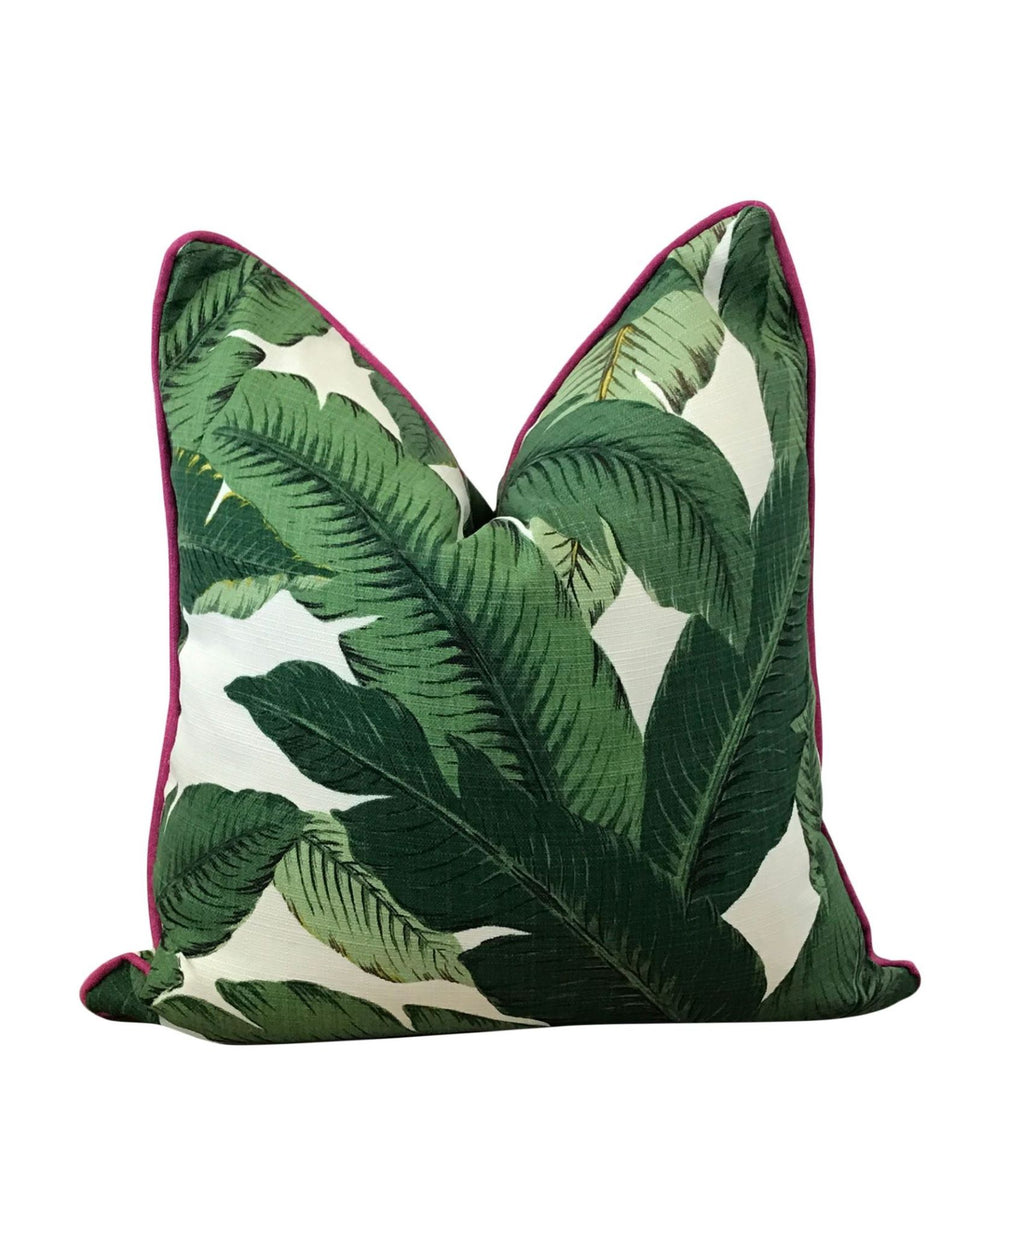 Tommy Bahama Swaying Palms Decorative Pillow Cover Lilly and Co.